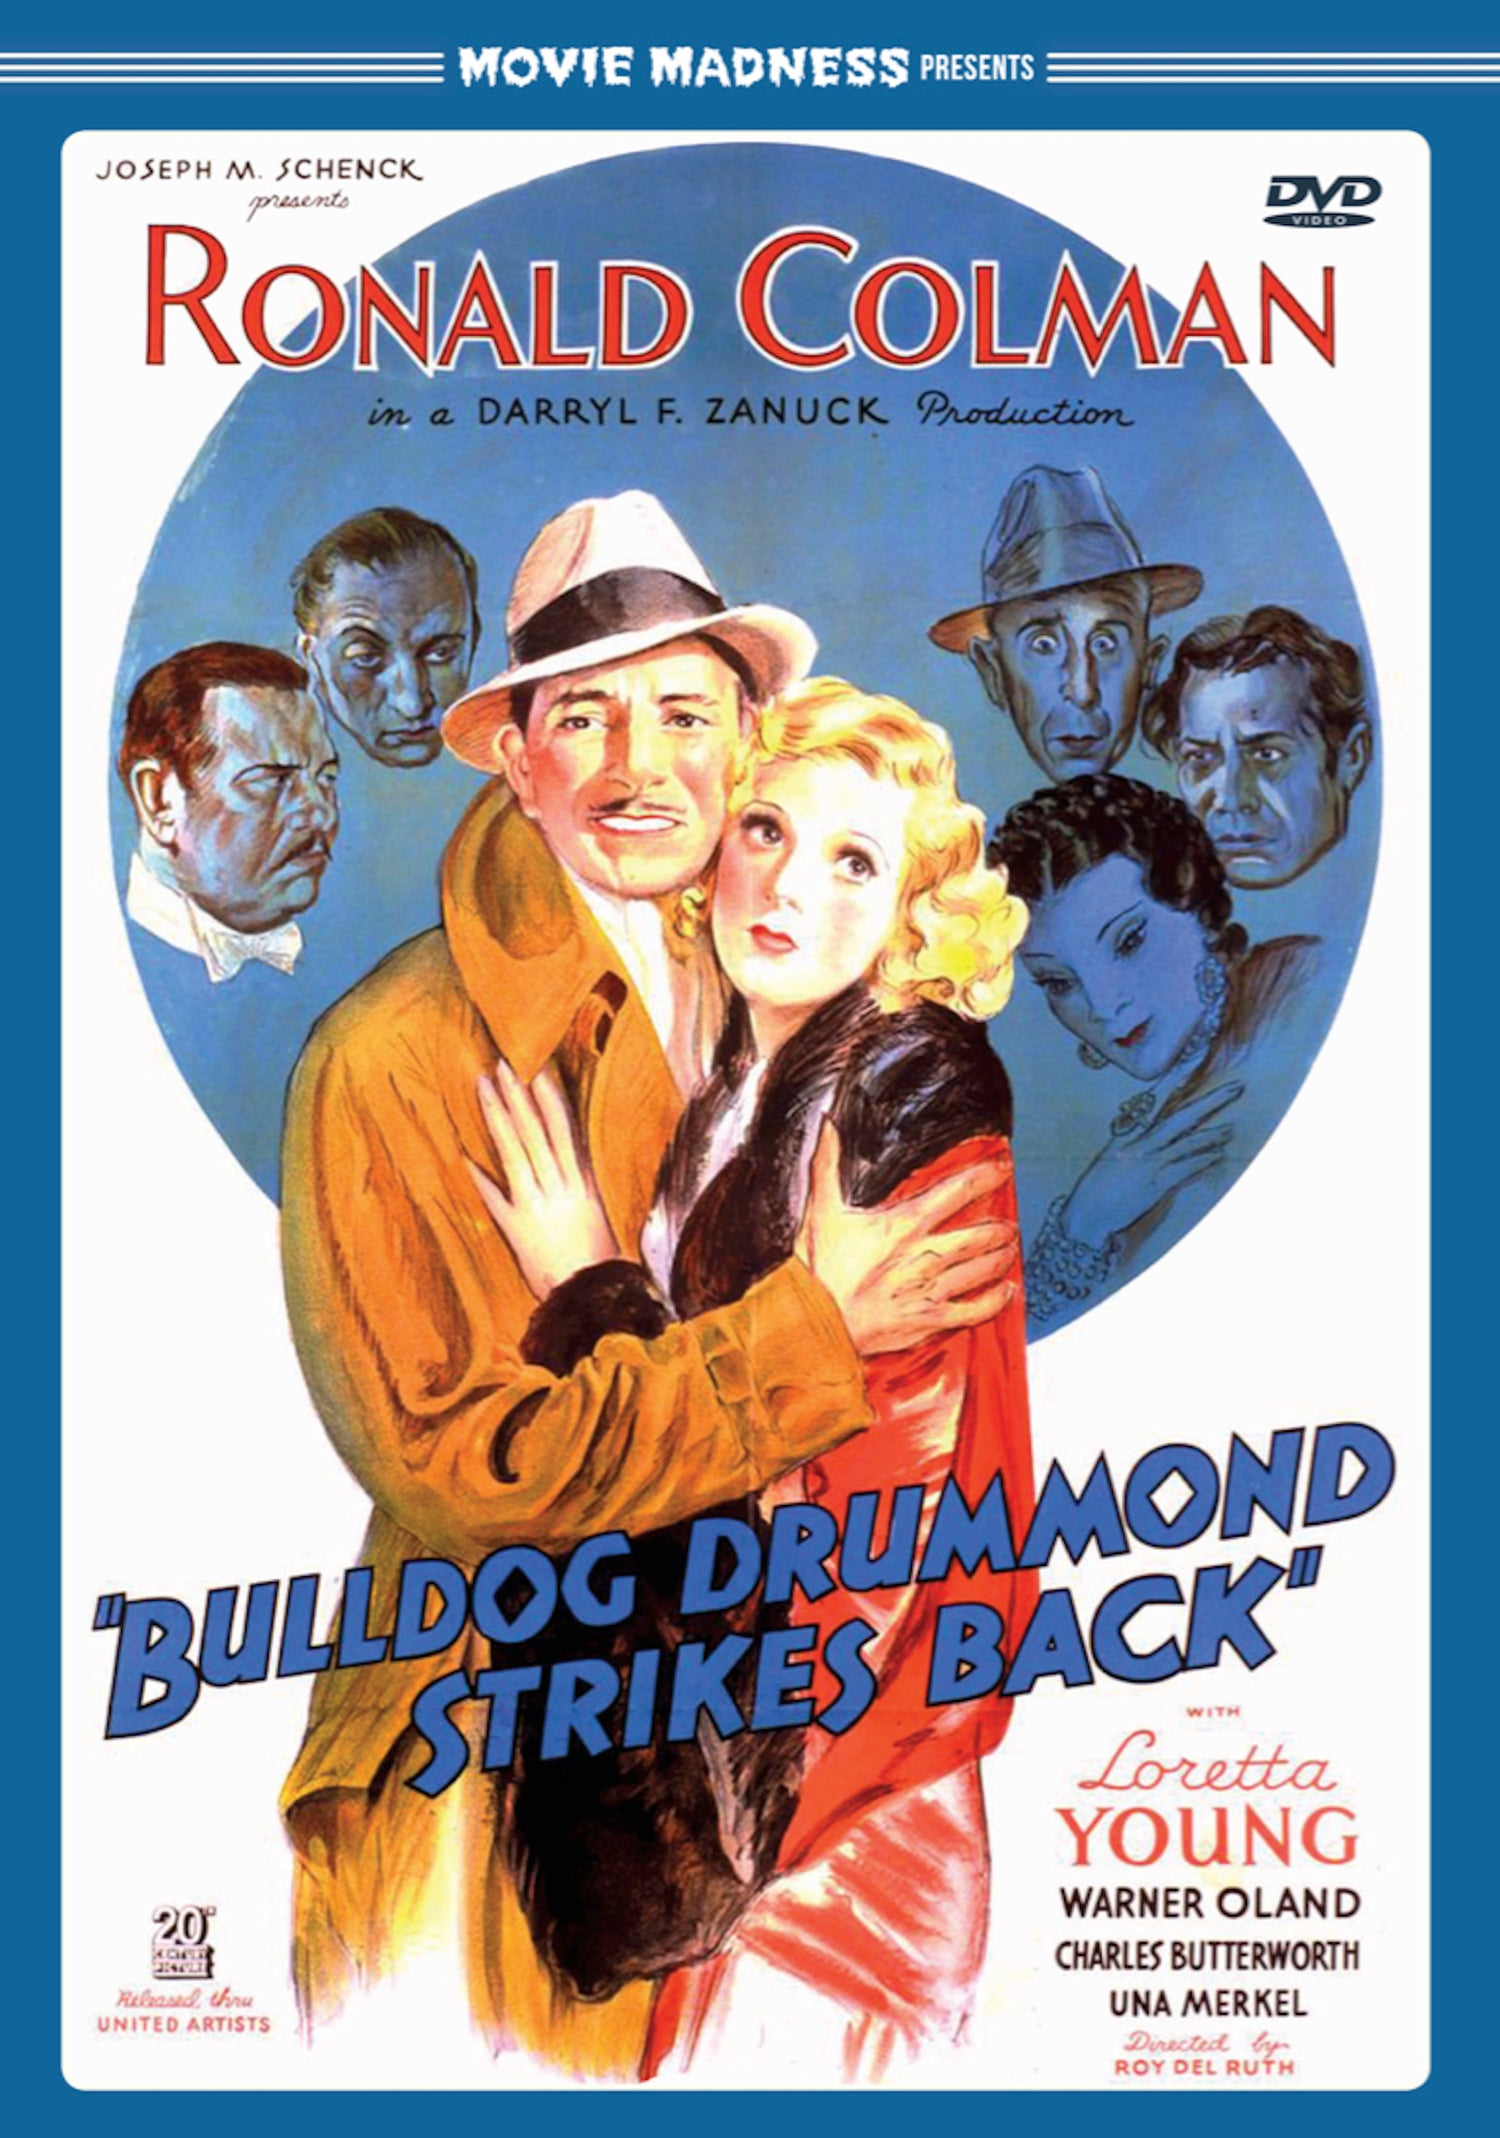 Image of Movie Madness Presents: Bulldog Drummond Strikes Back